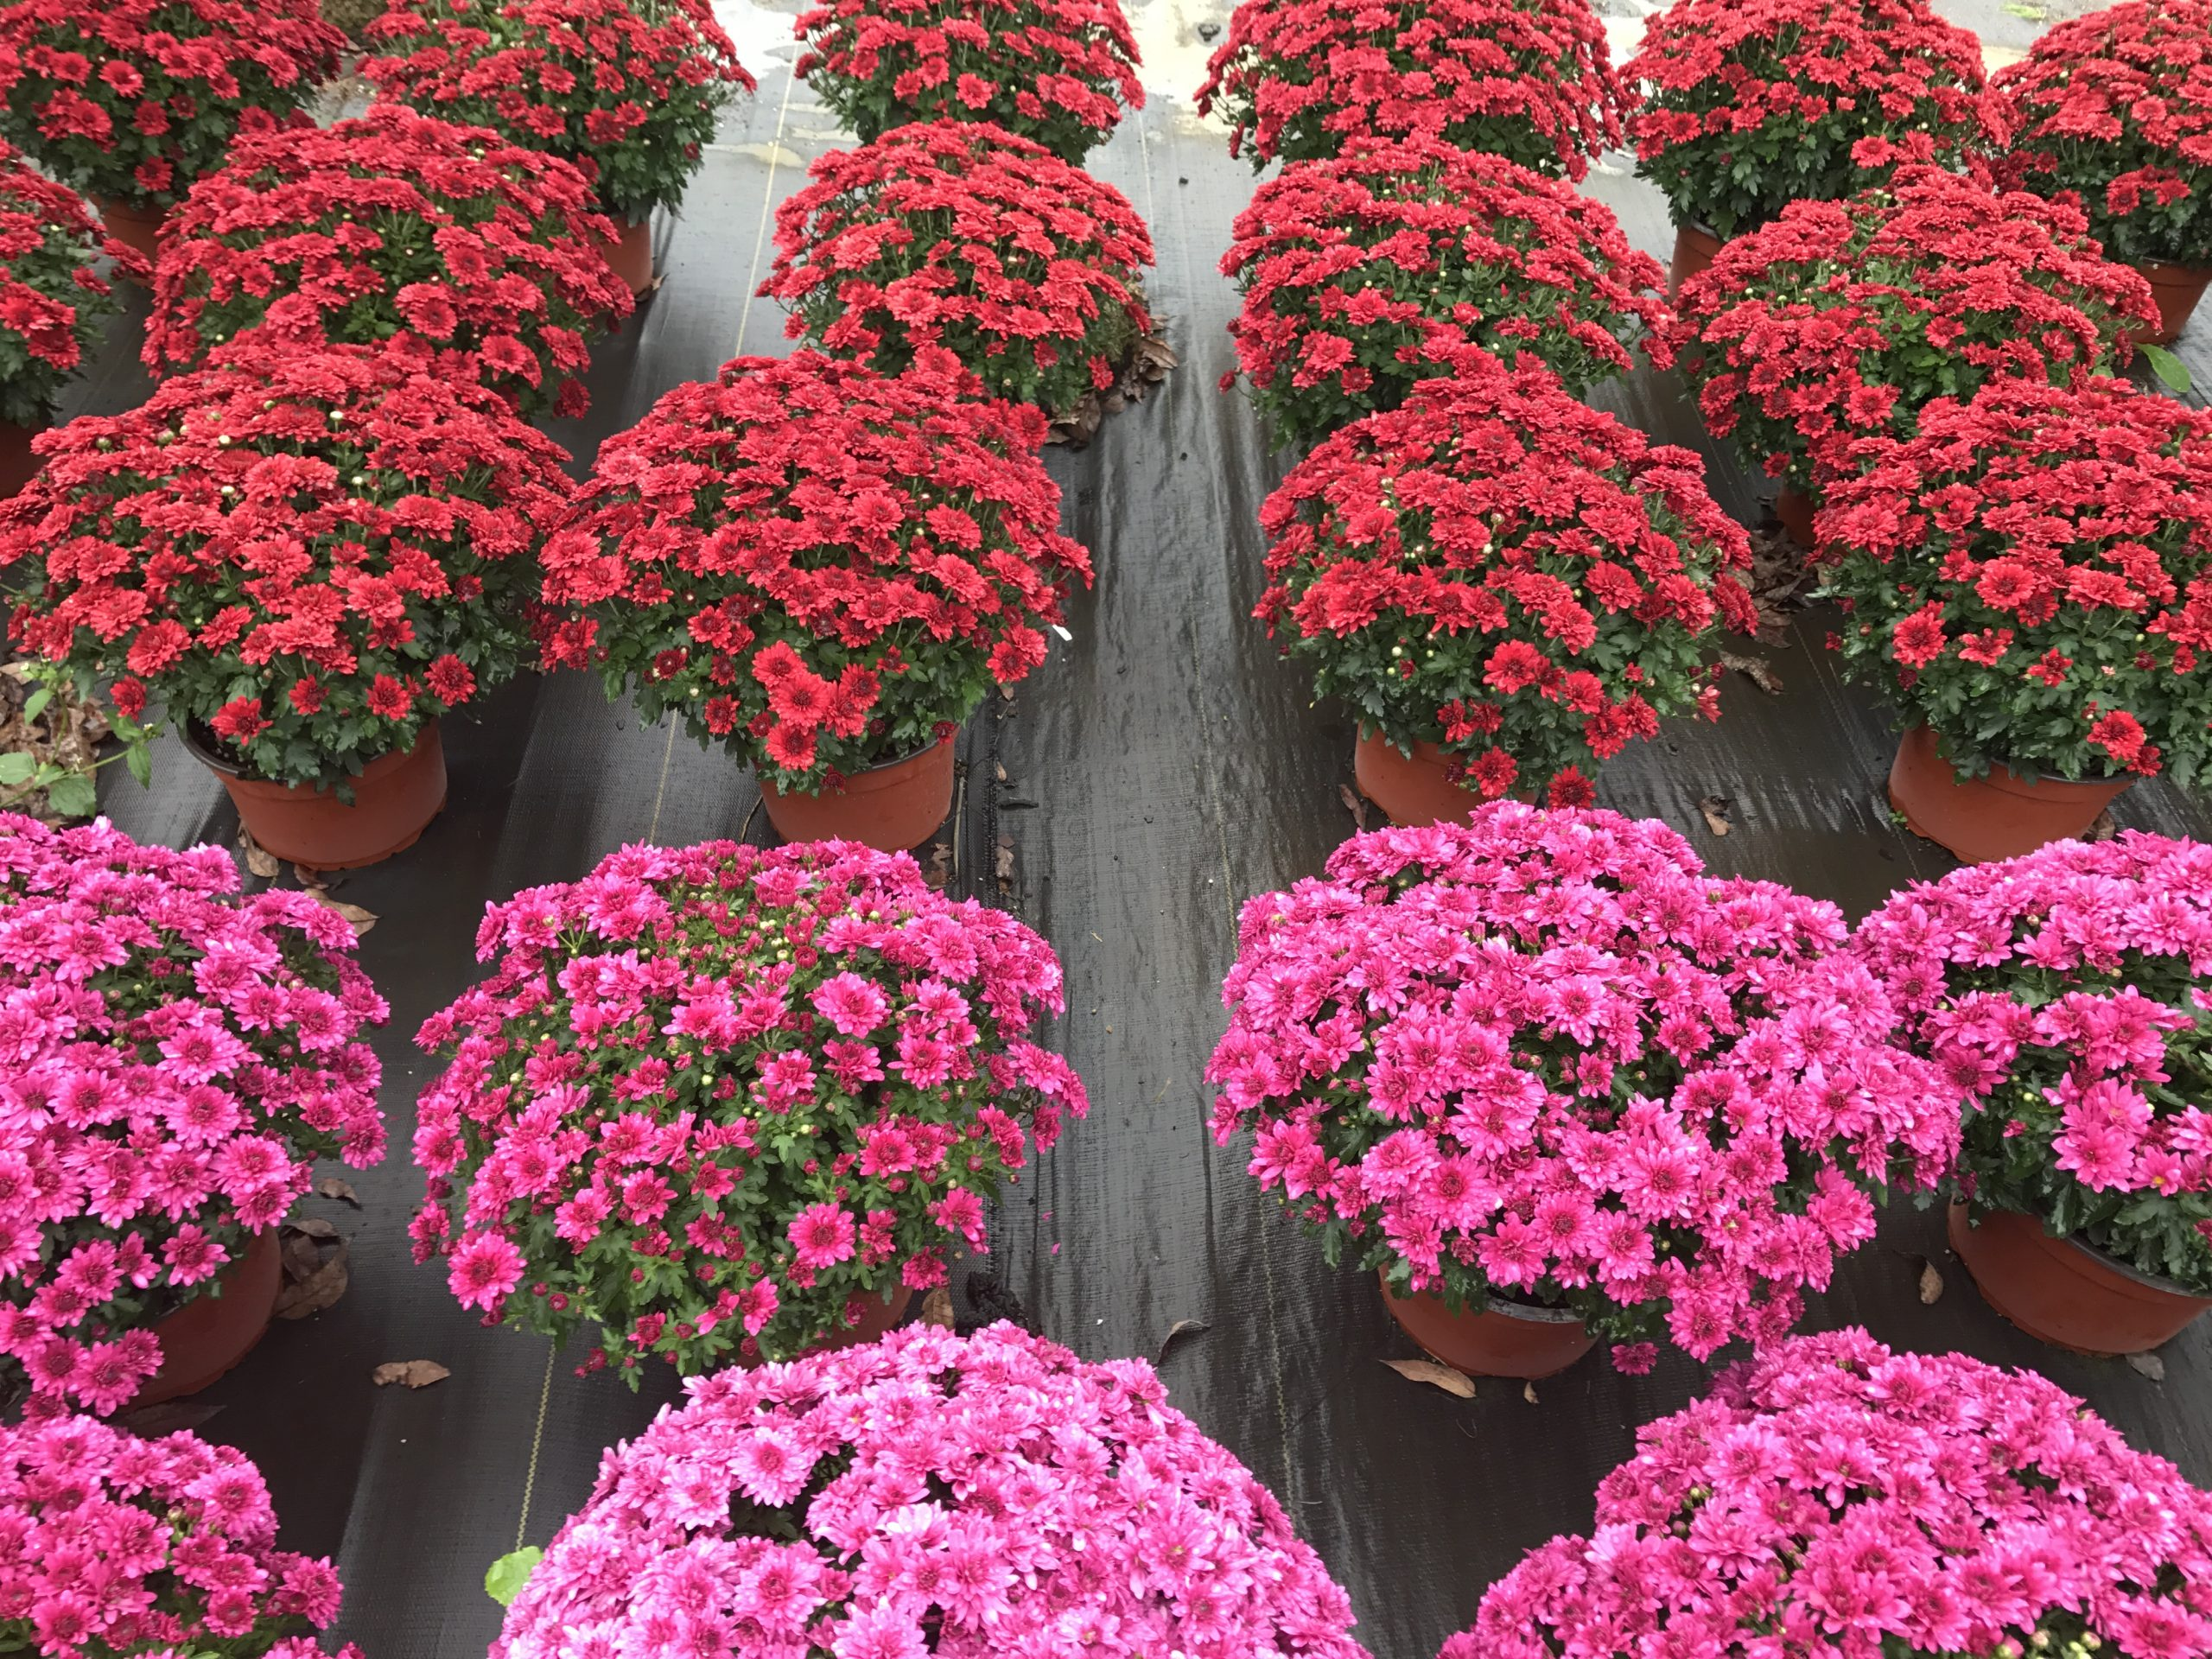 Colorful Mums Majestic Nursery and Gardens